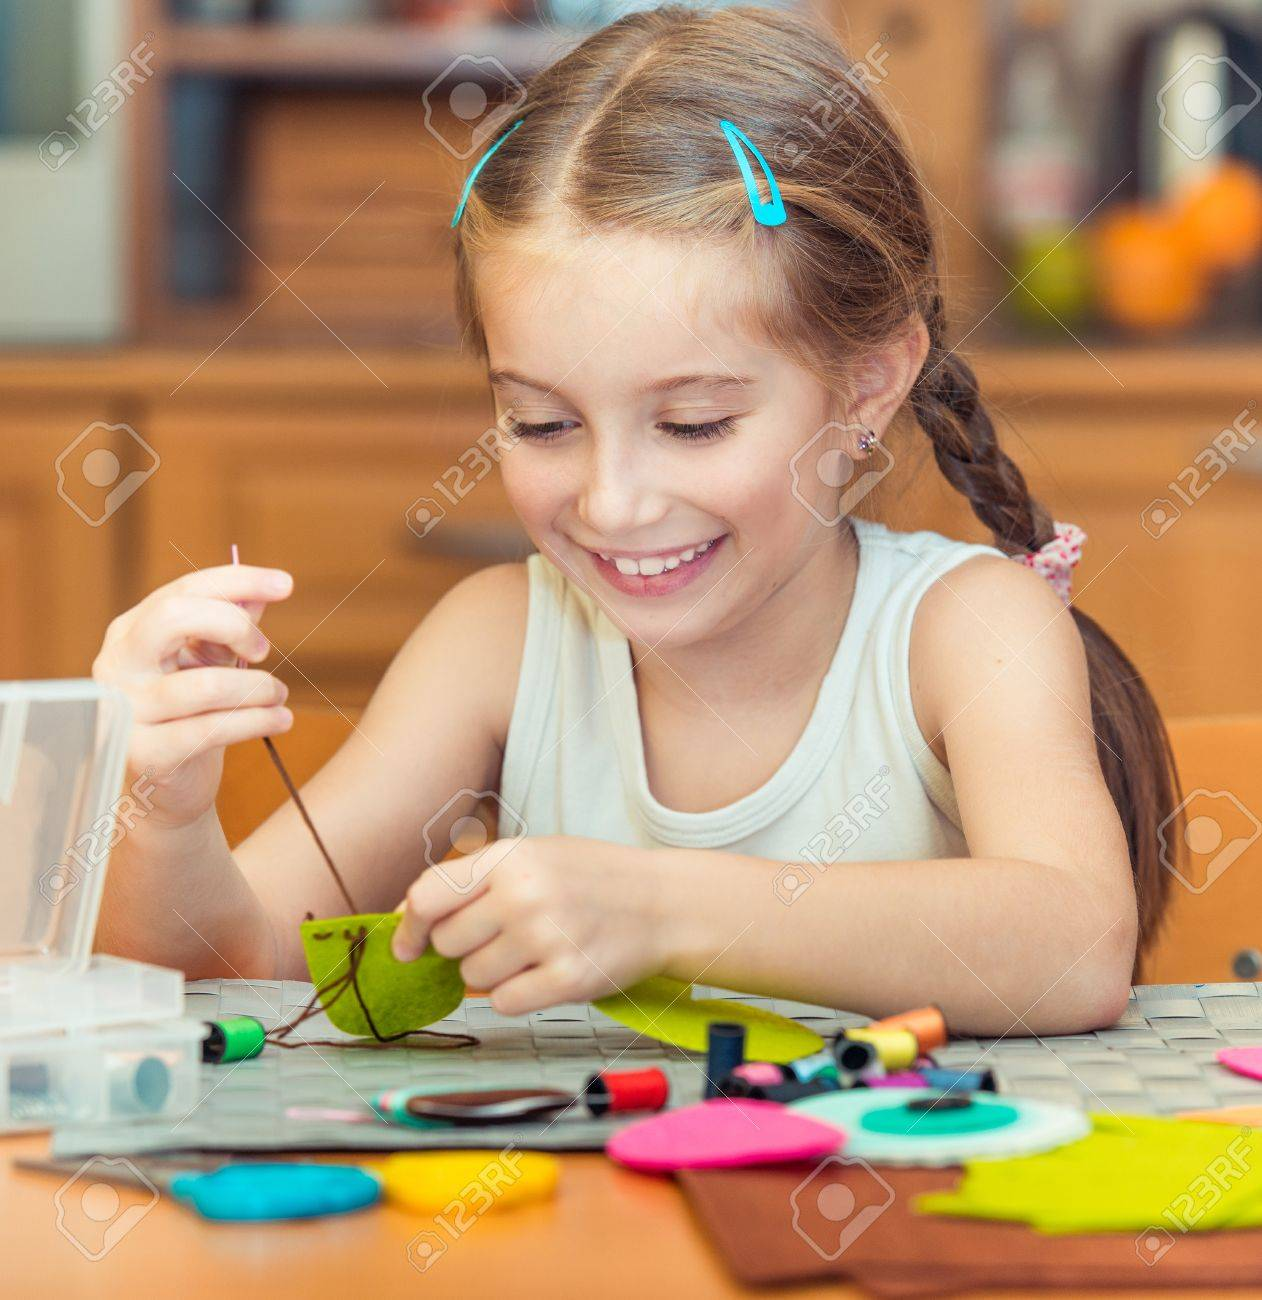 happy cute little girl is engaged in sewing - 33880879